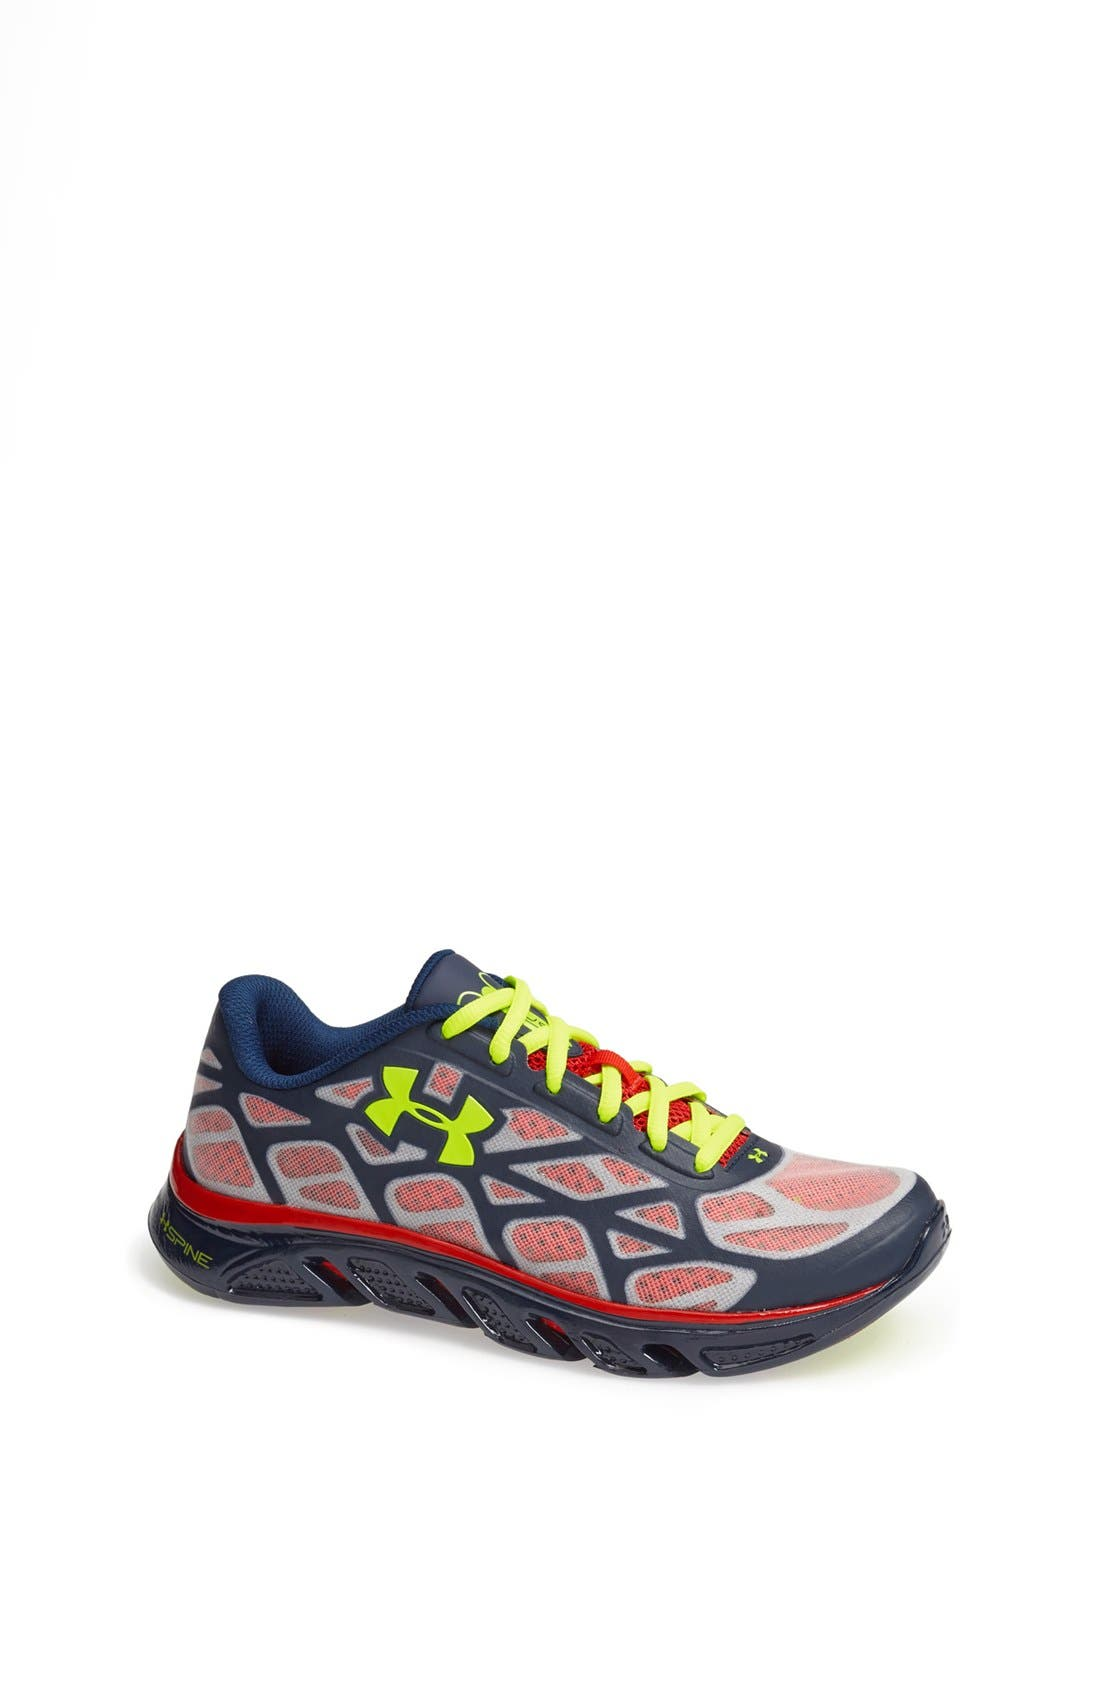 Alternate Image 1 Selected - Under Armour 'Spine™ - Vice Super Hero' Athletic Shoe (Big Kid)